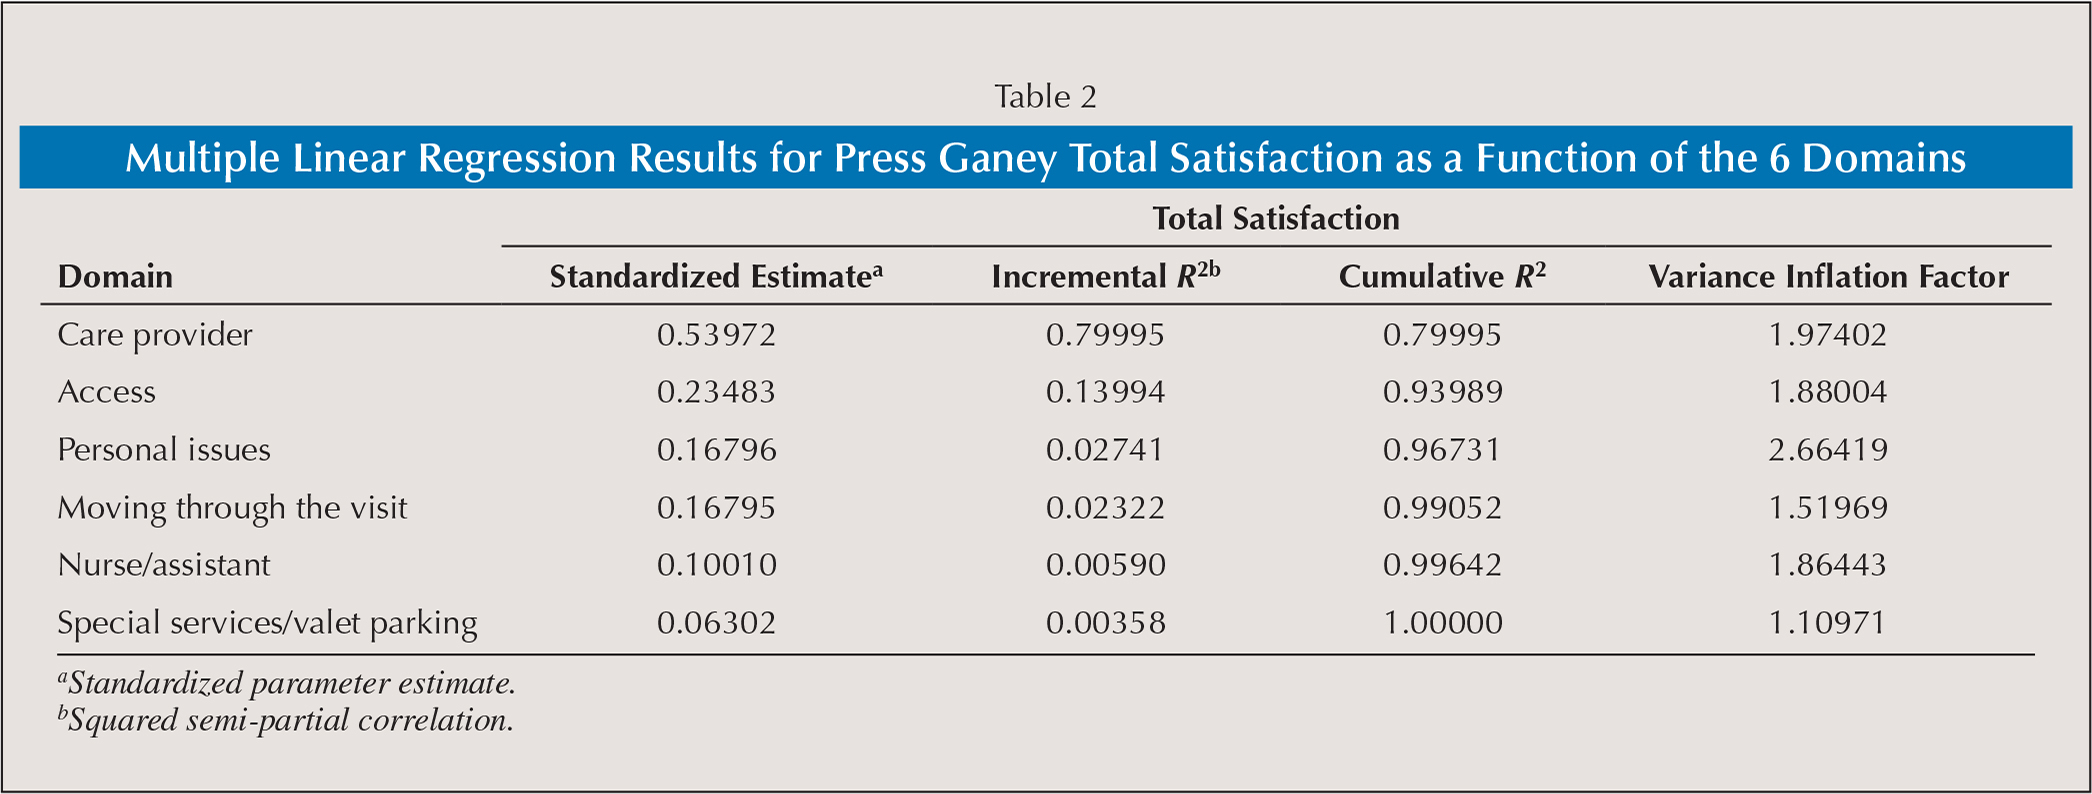 Multiple Linear Regression Results for Press Ganey Total Satisfaction as a Function of the 6 Domains